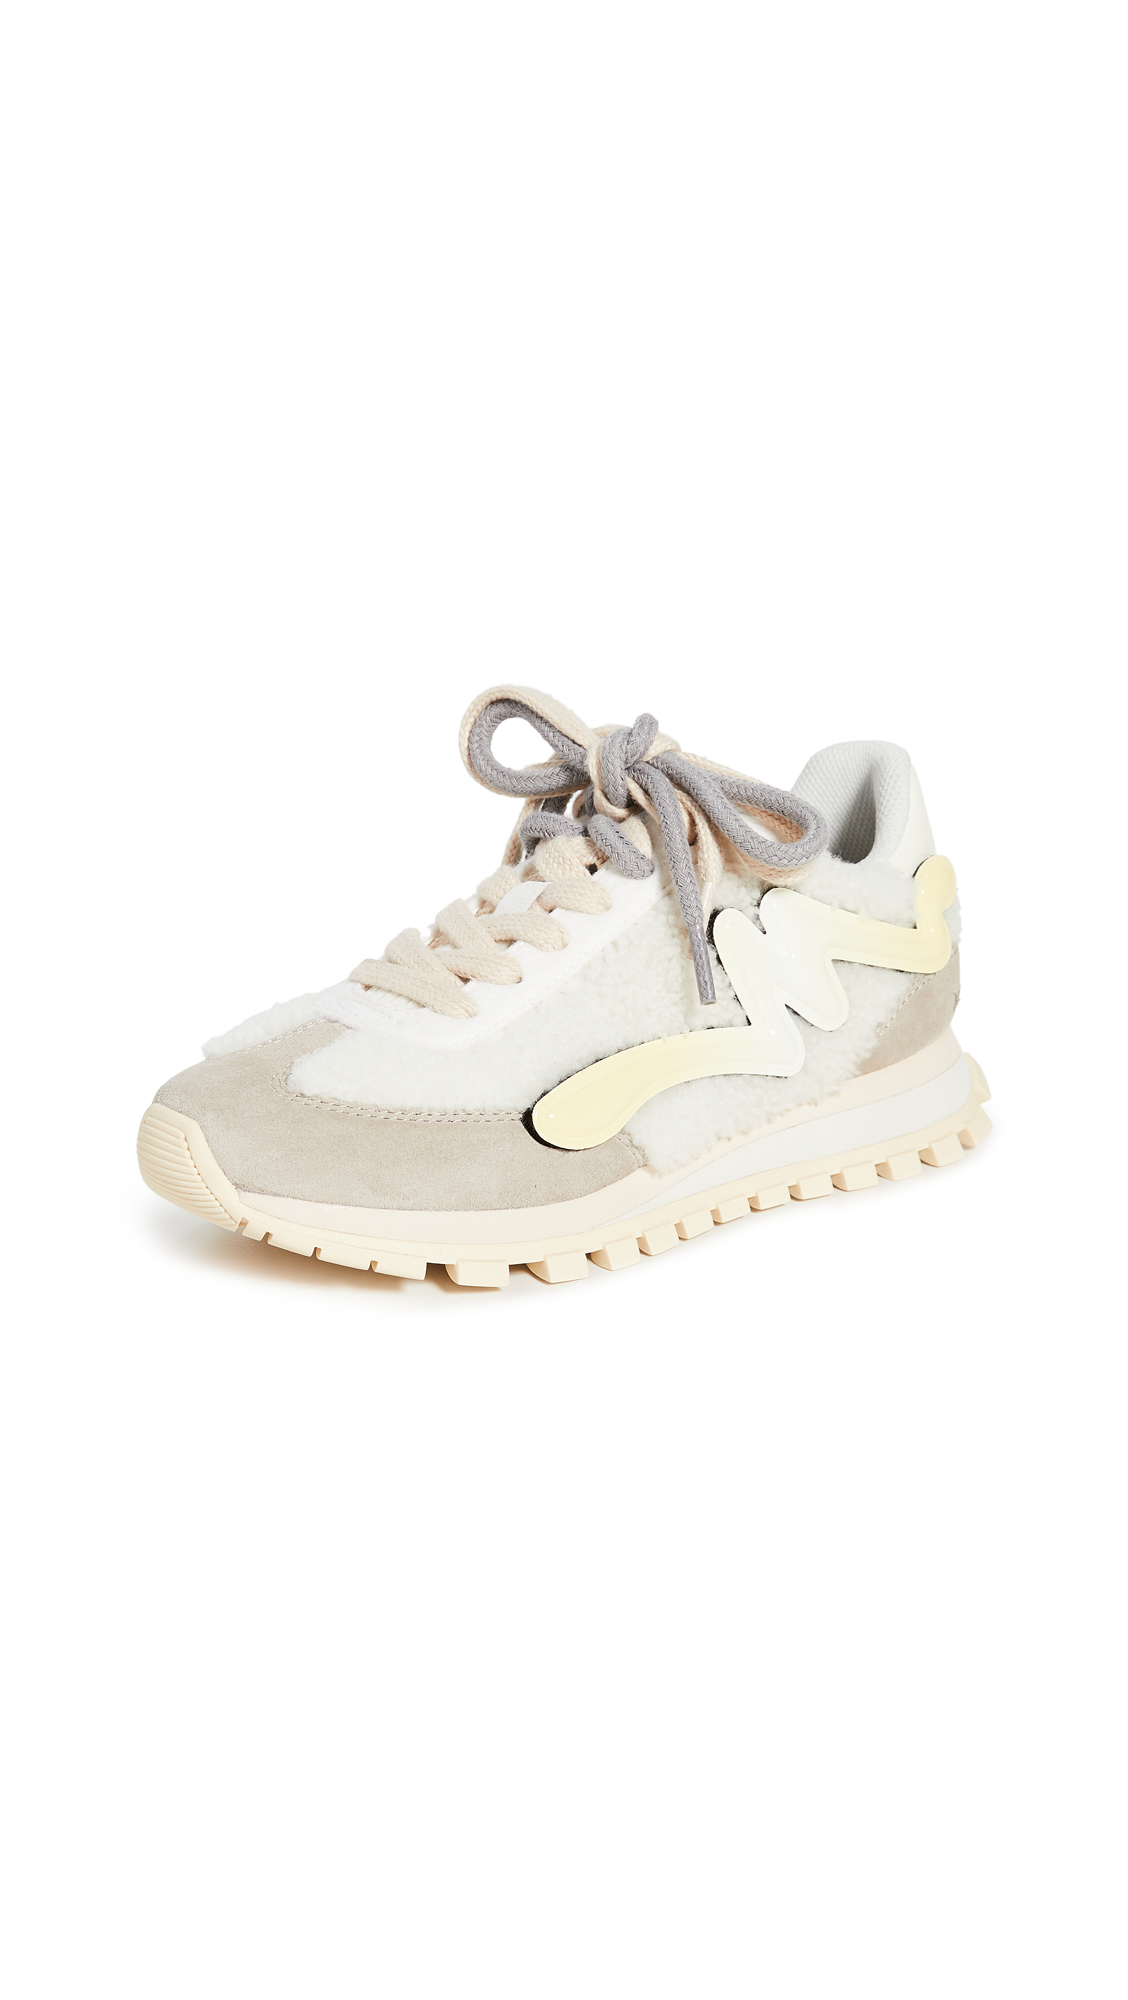 Runway Marc Jacobs The Jogger X Runway Edition Sneakers - 40% Off Sale